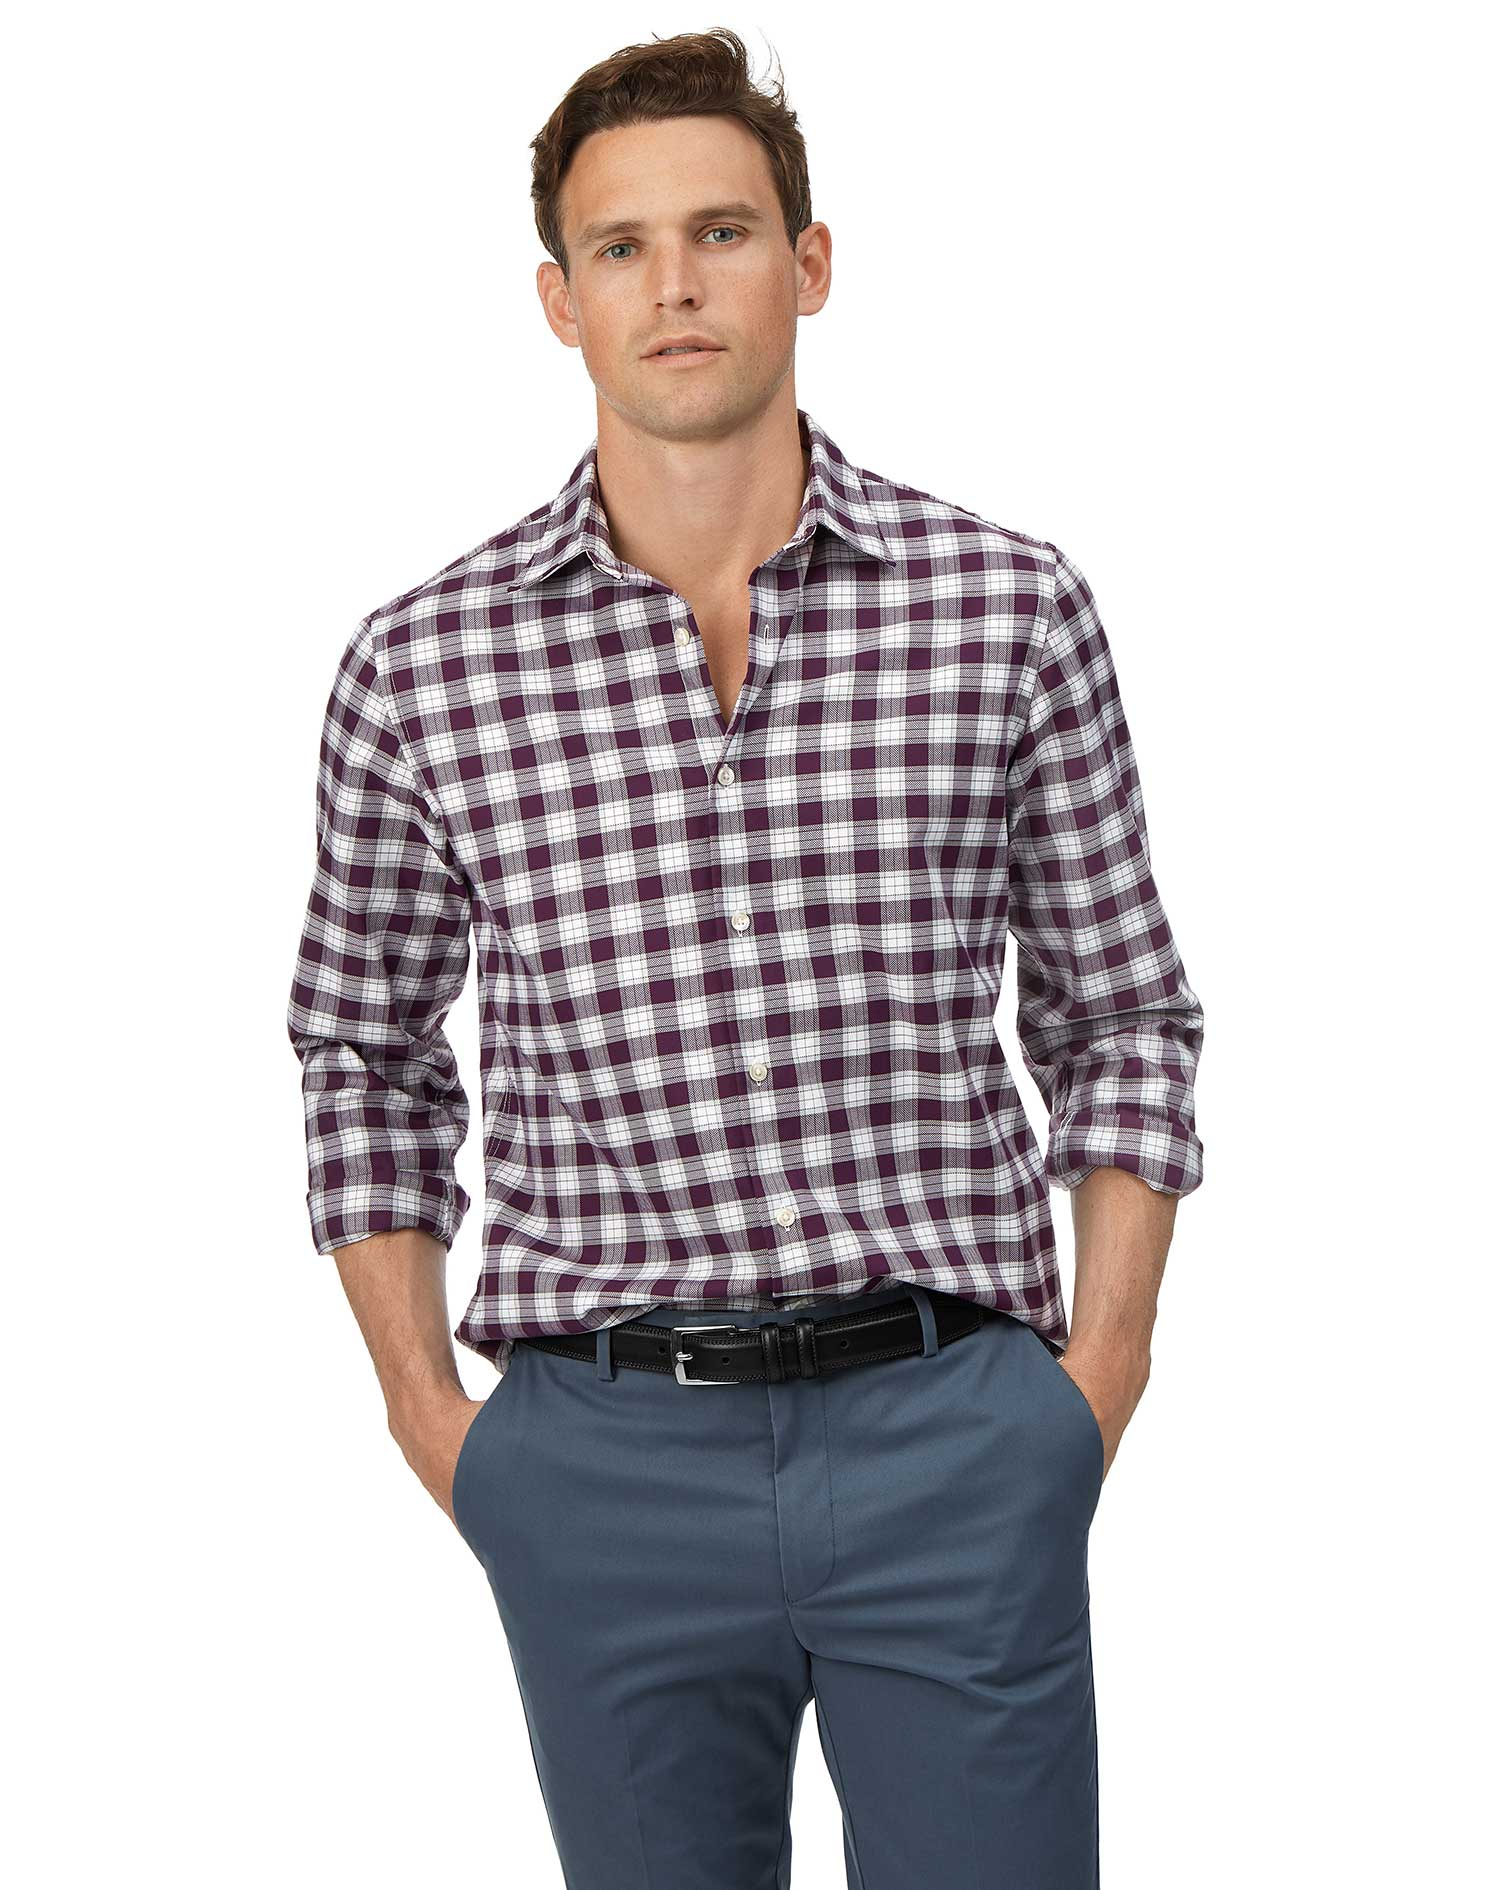 Slim Fit Soft Washed Non-Iron Stretch Oxford Berry and White Check Cotton Shirt Single Cuff Size Med